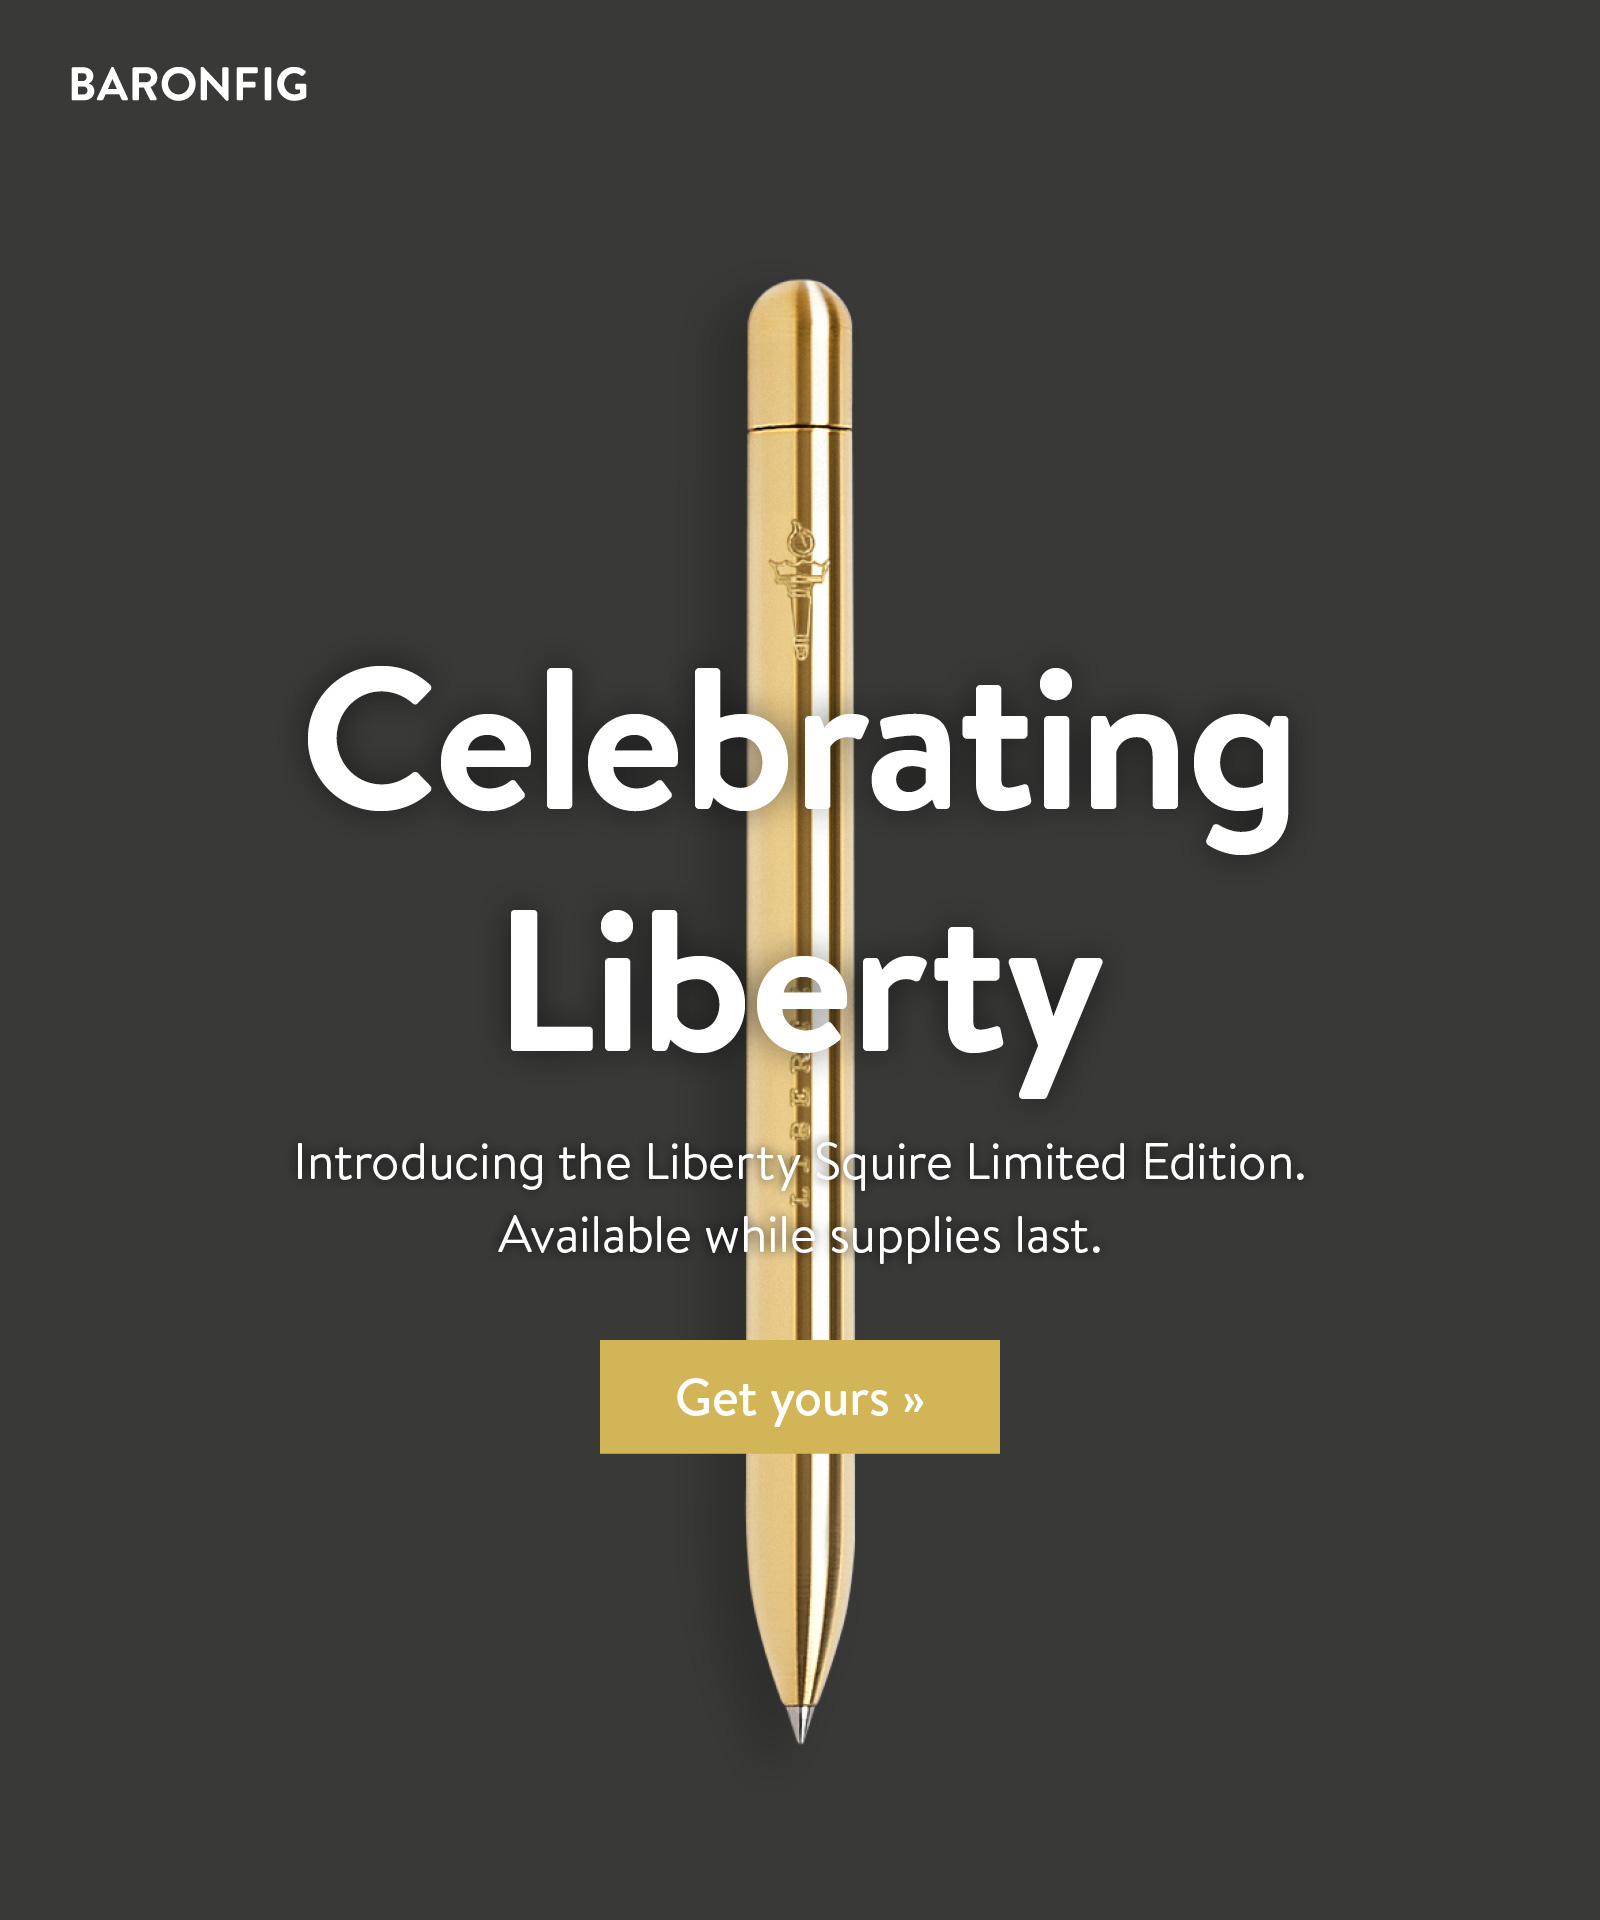 Introducing the Liberty Squire Limited Edition. Get yours ?